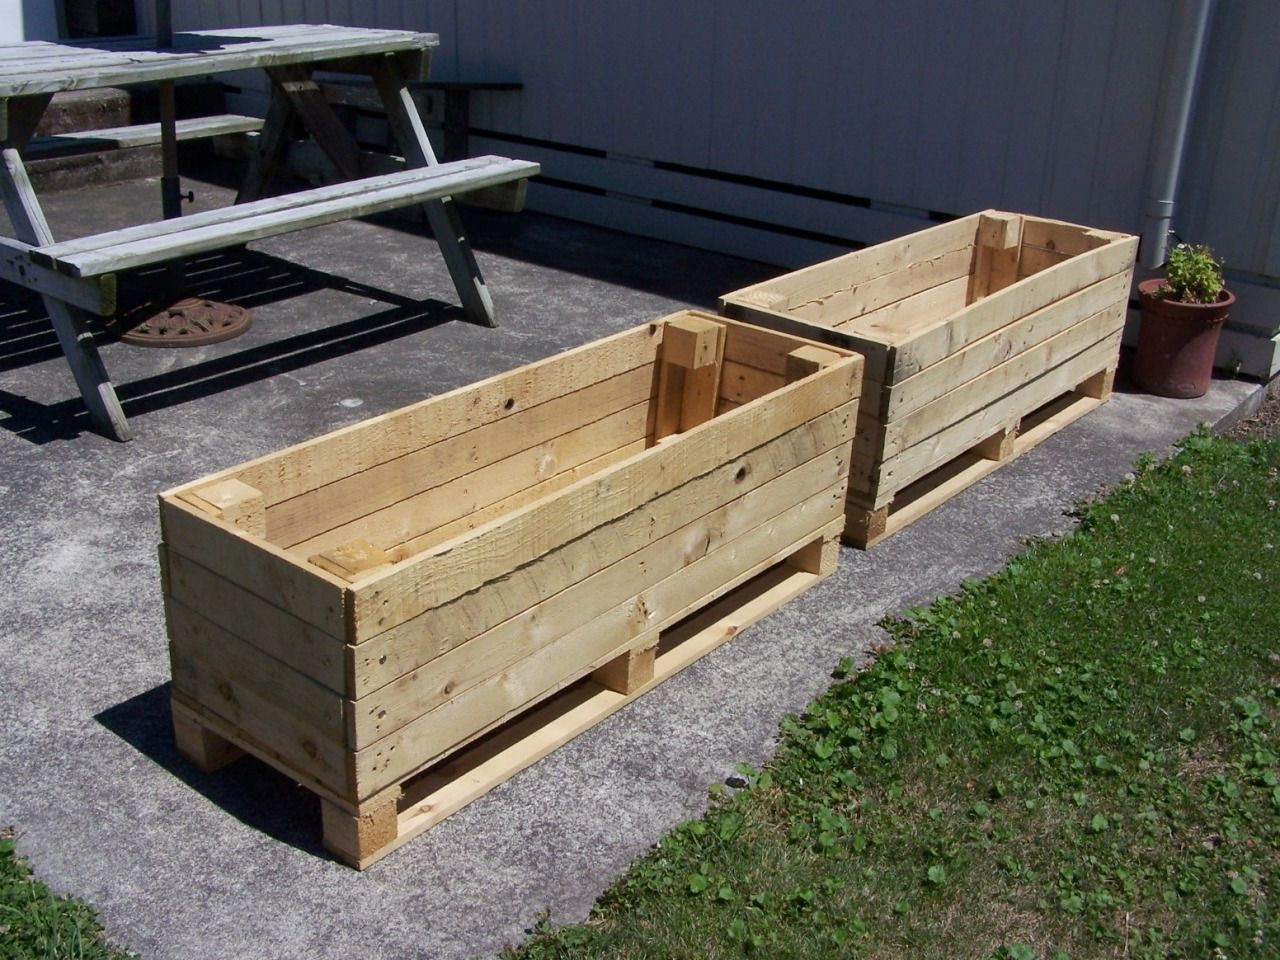 Diy Planter Box From Pallets My Boyfriend Made Me Two Planters Out Of Pallets Woohoo